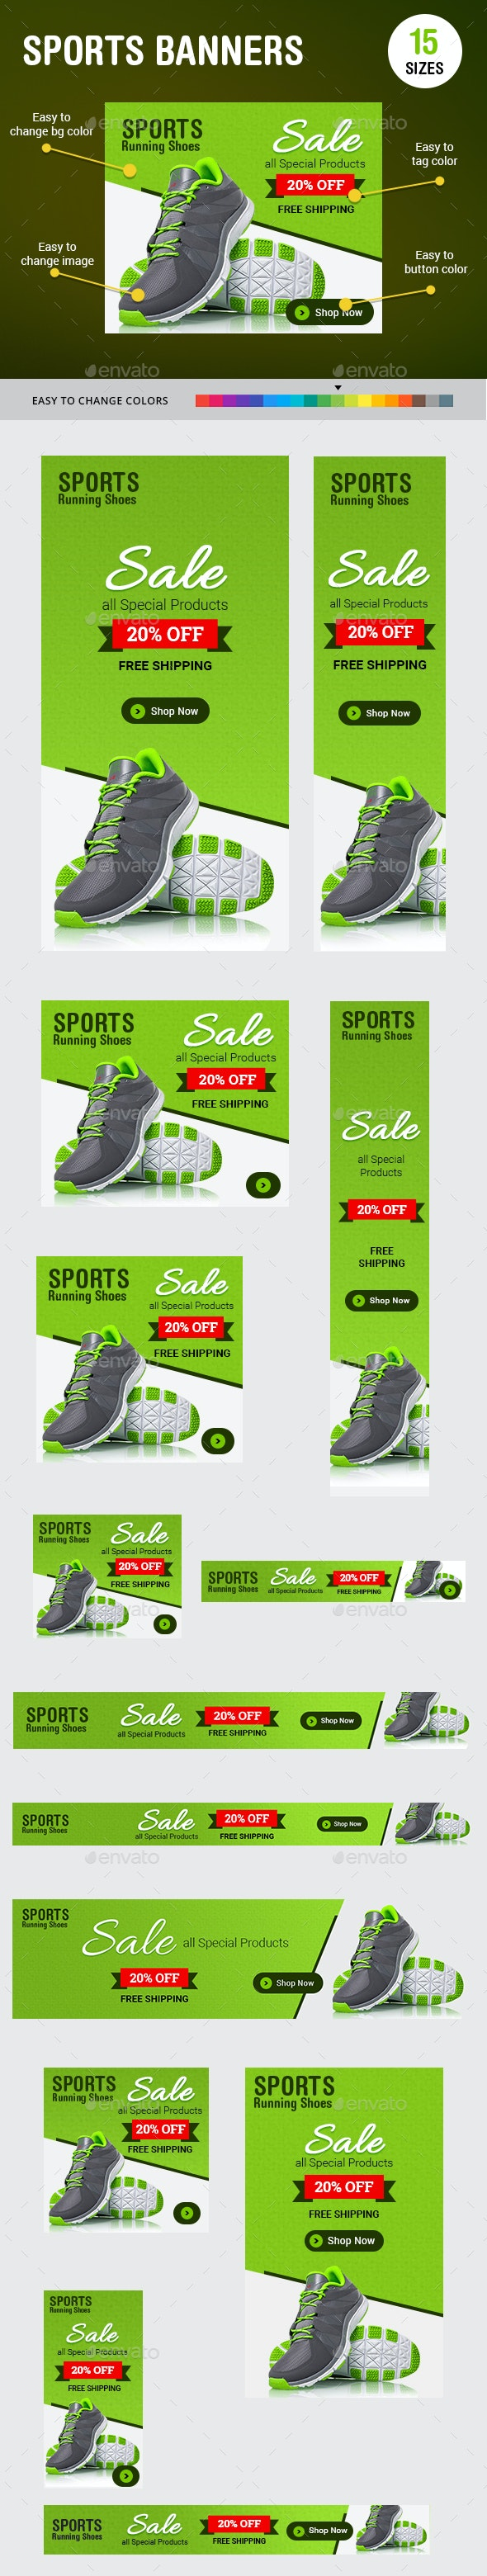 Sports Running Shoes Banners - Banners & Ads Web Elements